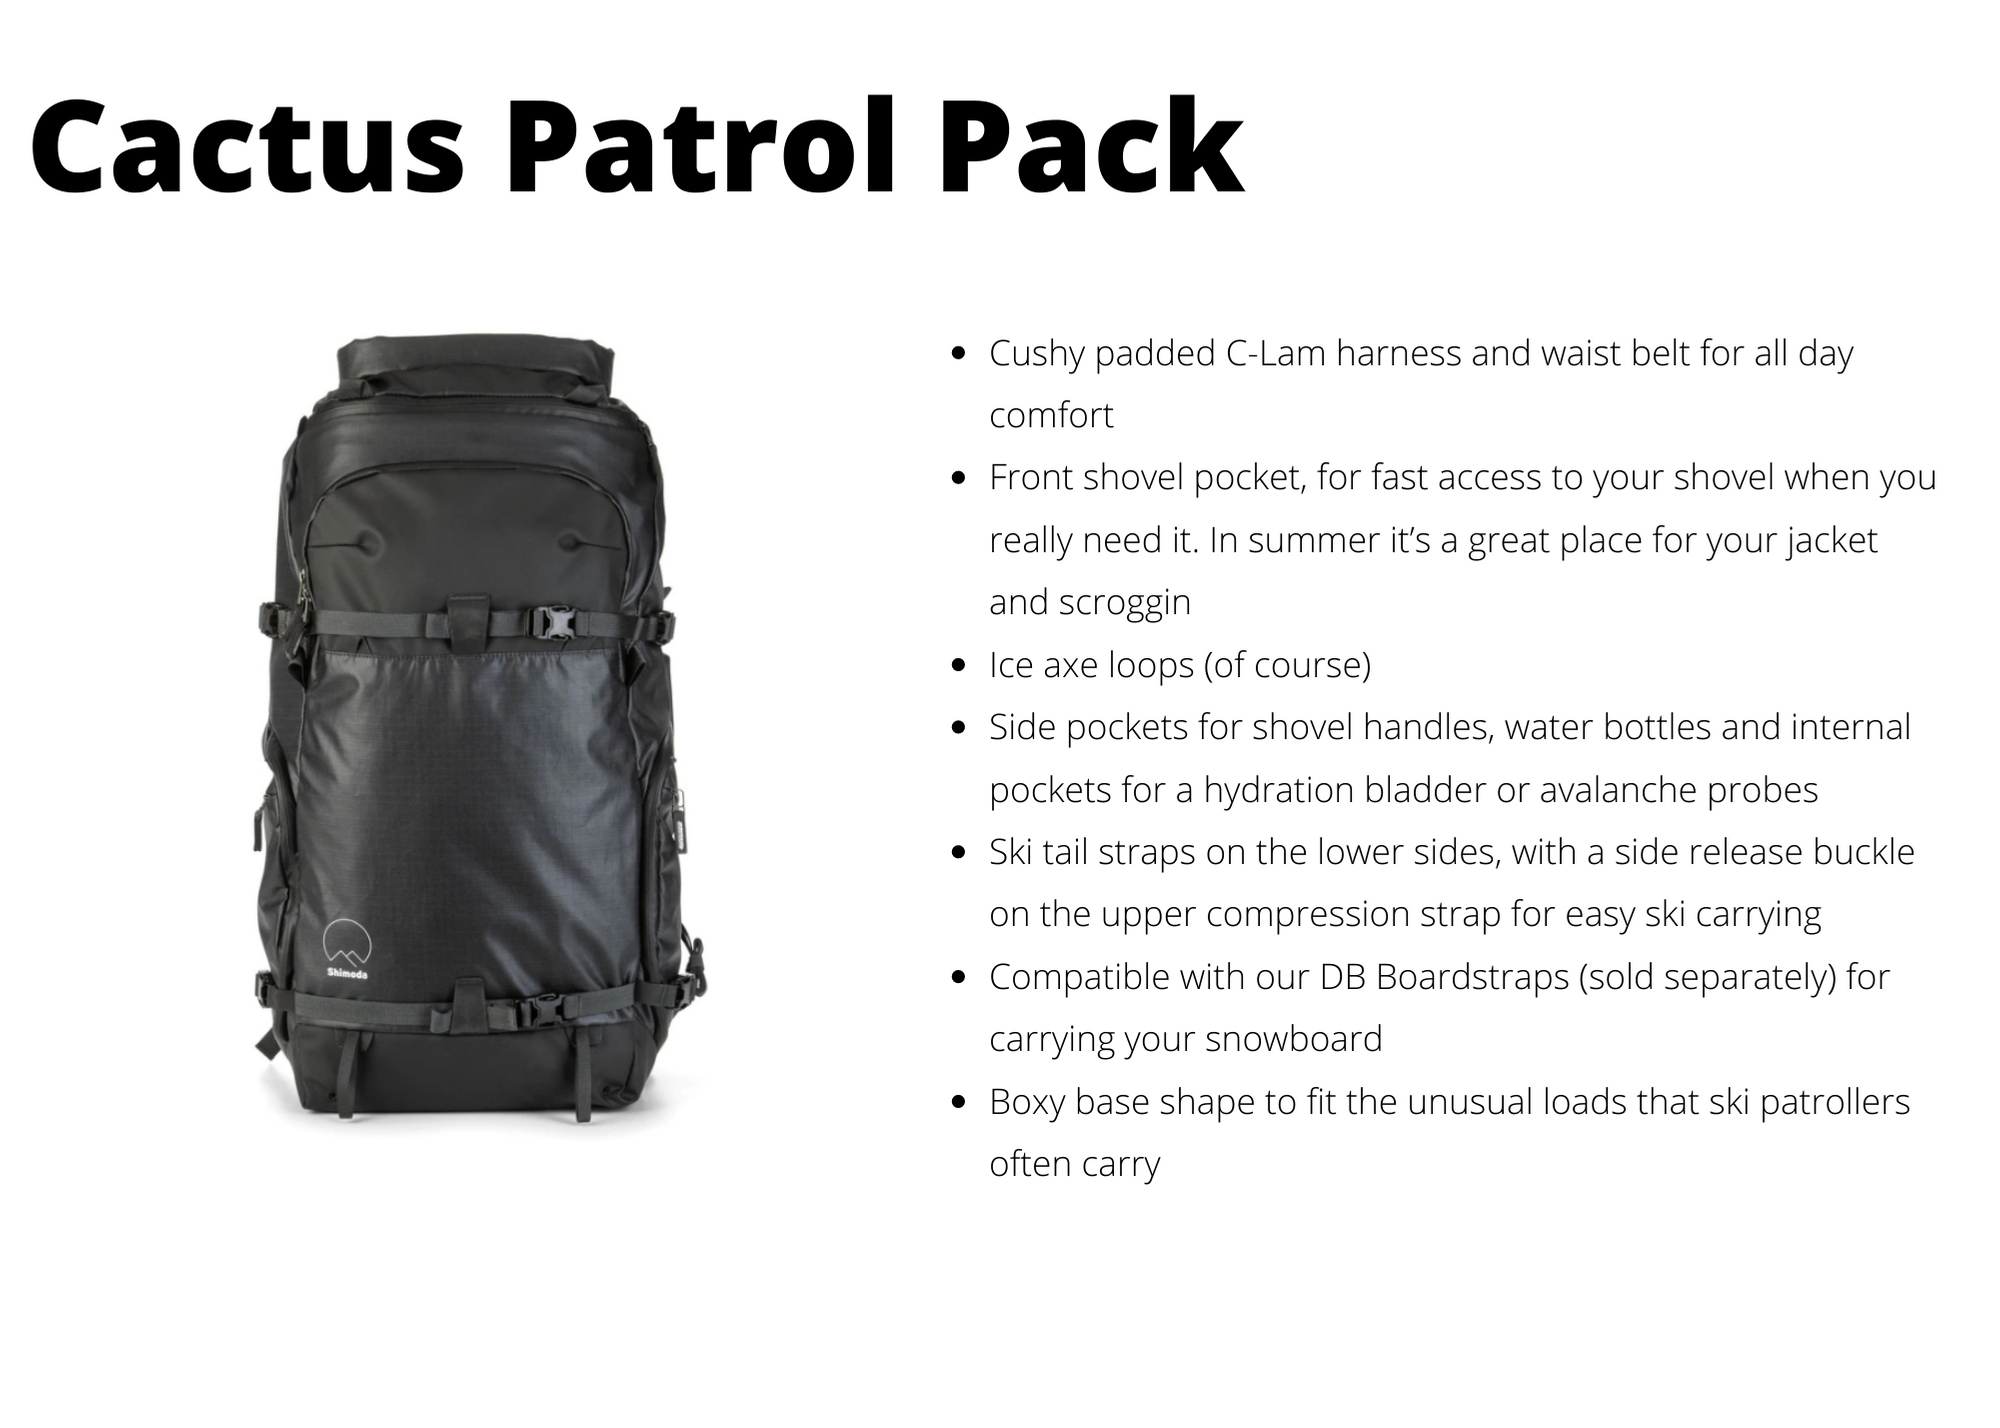 Cactus Patrol Pack for winter photography